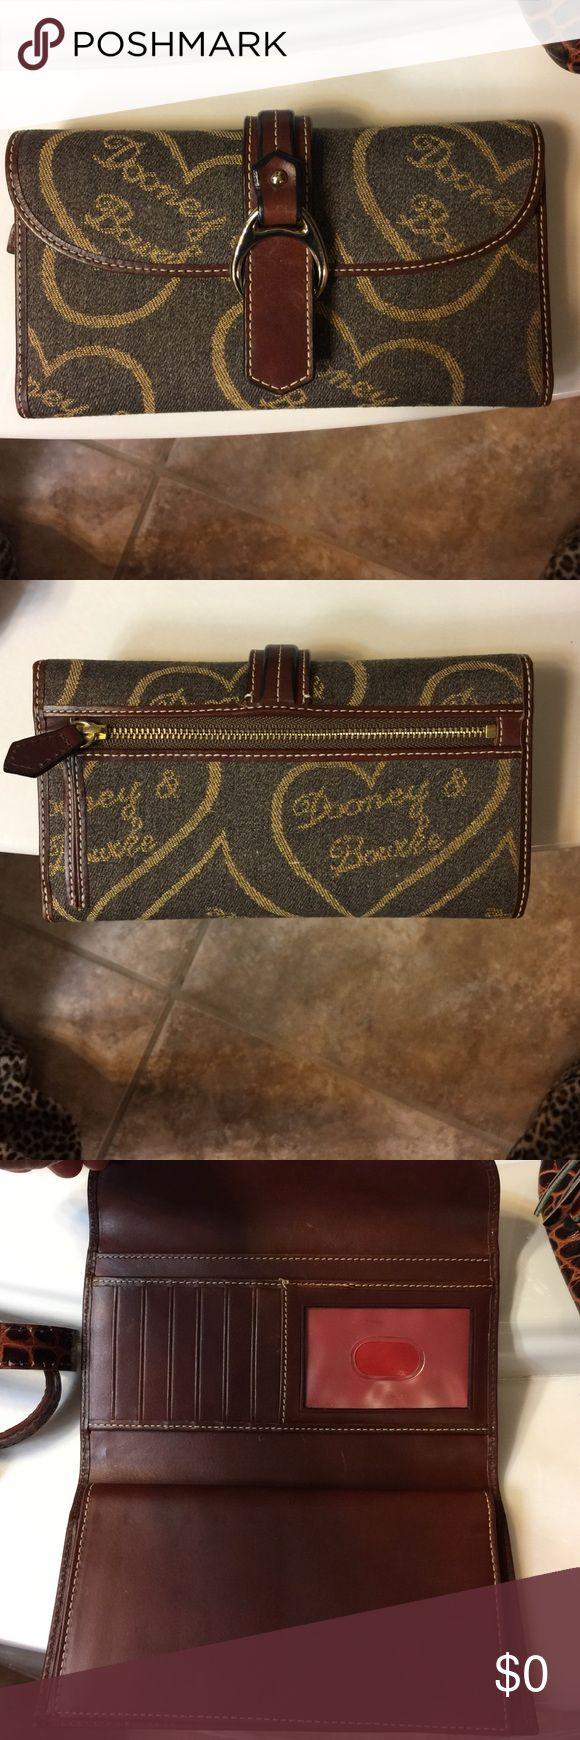 additional pictures of D &B wallet Additional pictures Dooney & Bourke Other